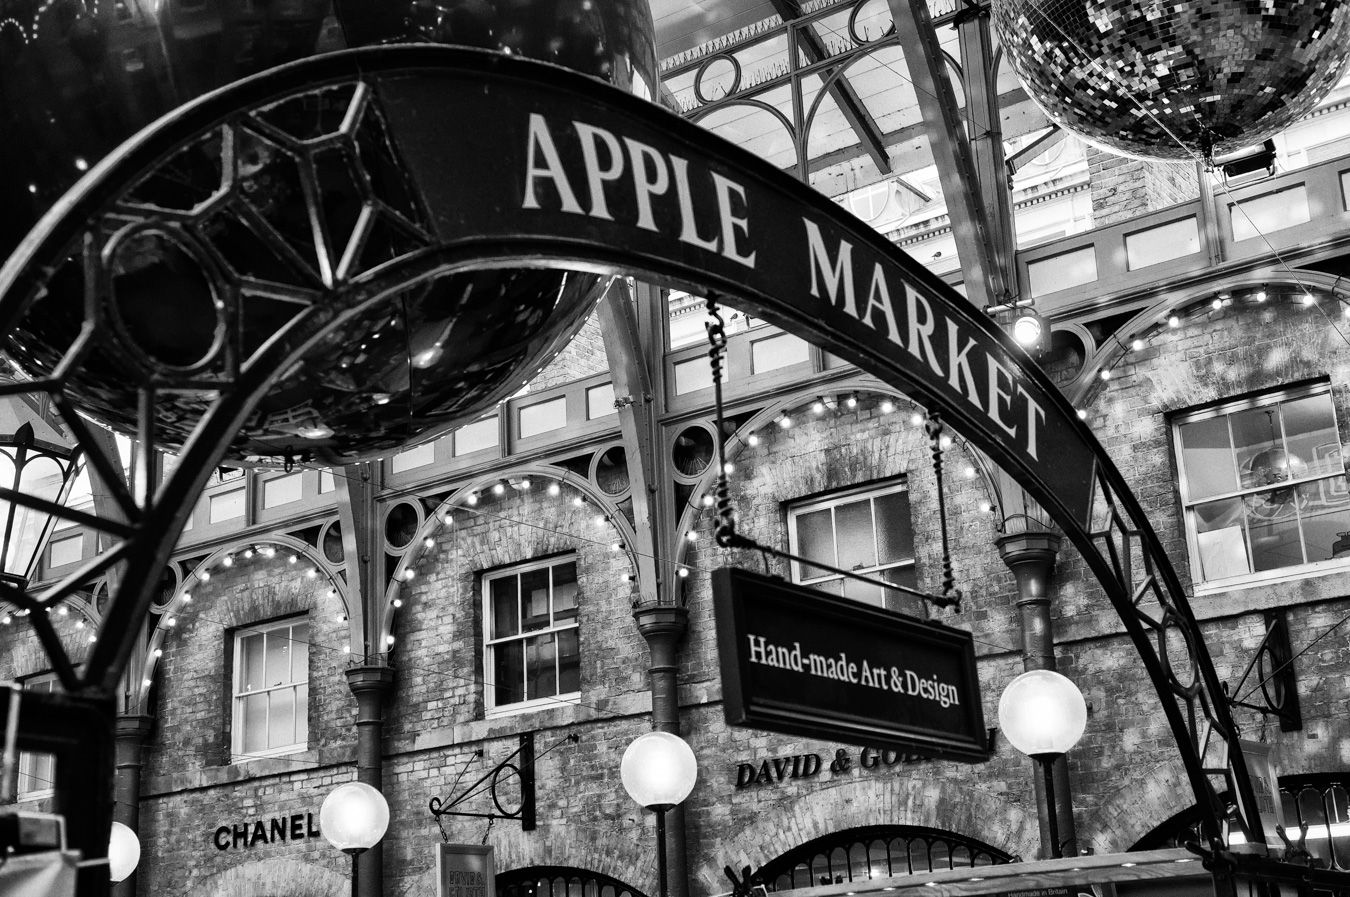 Sign at Covent Garden market's entrance, in London.